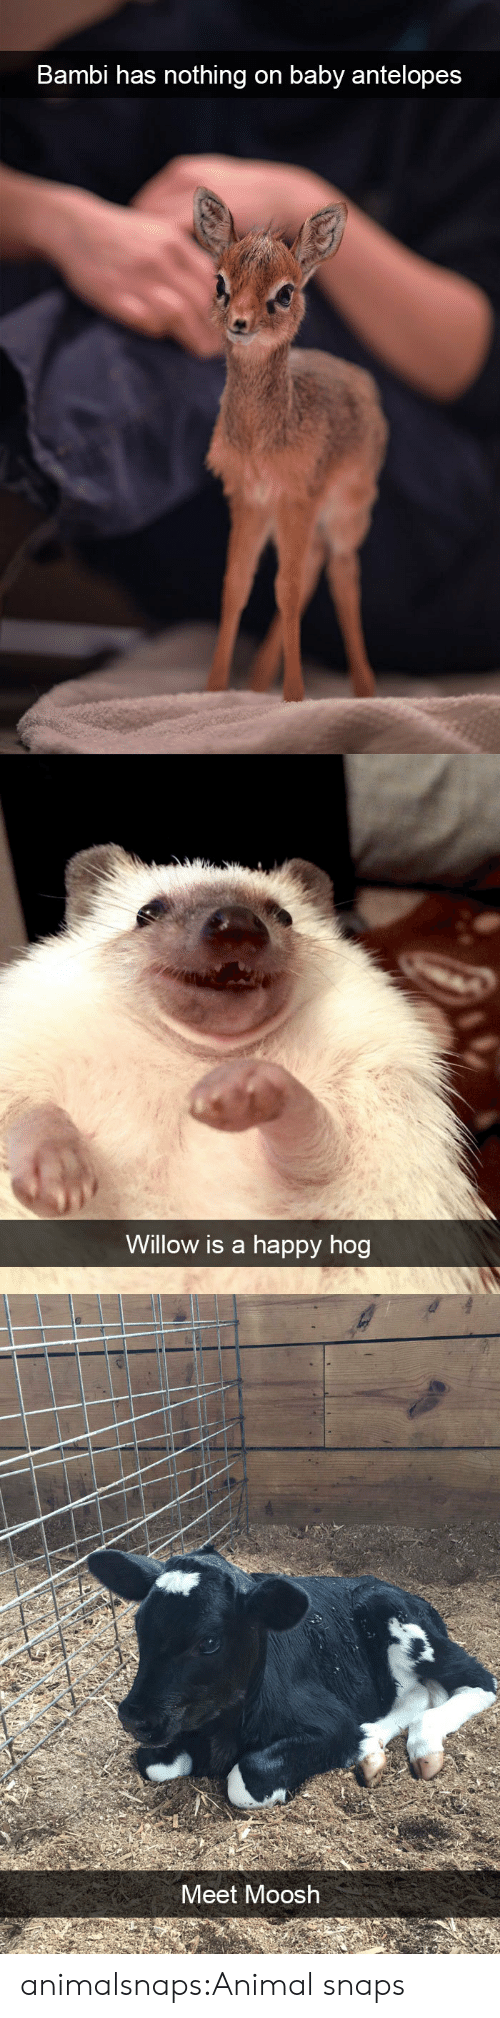 willow: Bambi has nothing on baby antelopes   Willow is a happy hog   Meet Moosh animalsnaps:Animal snaps